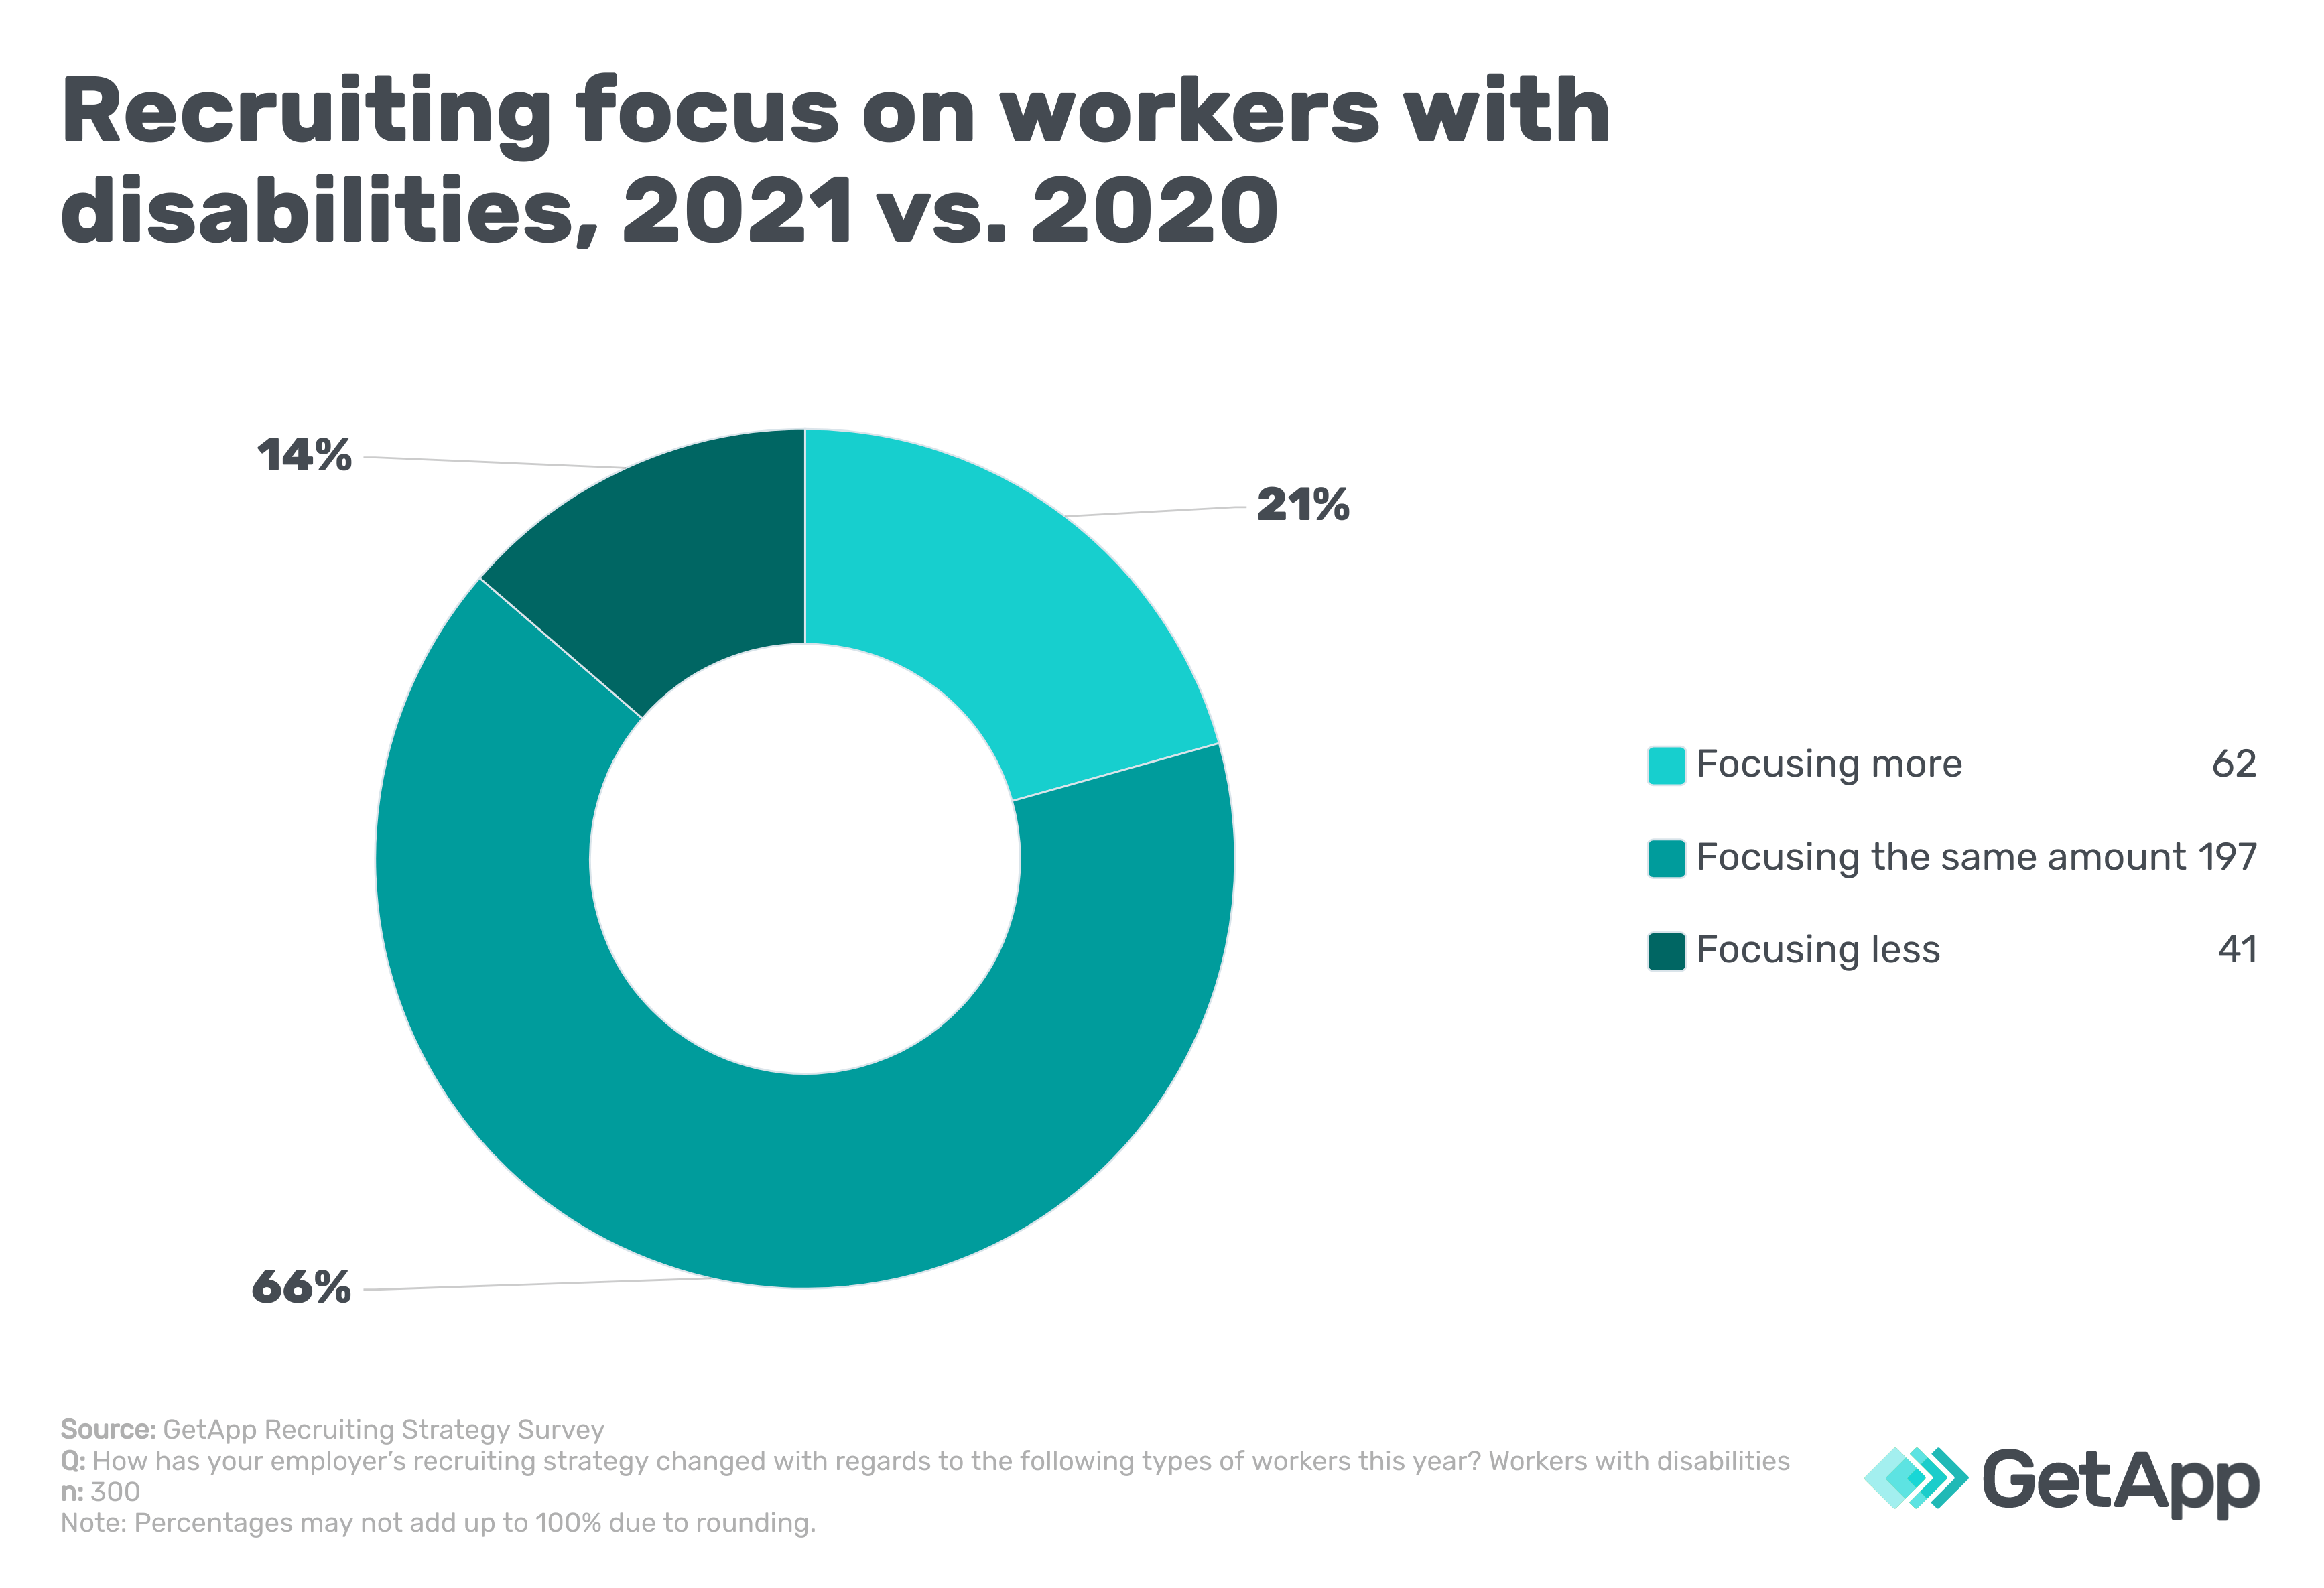 Recruiting focus on workers with disabilities, 2021 vs 2020